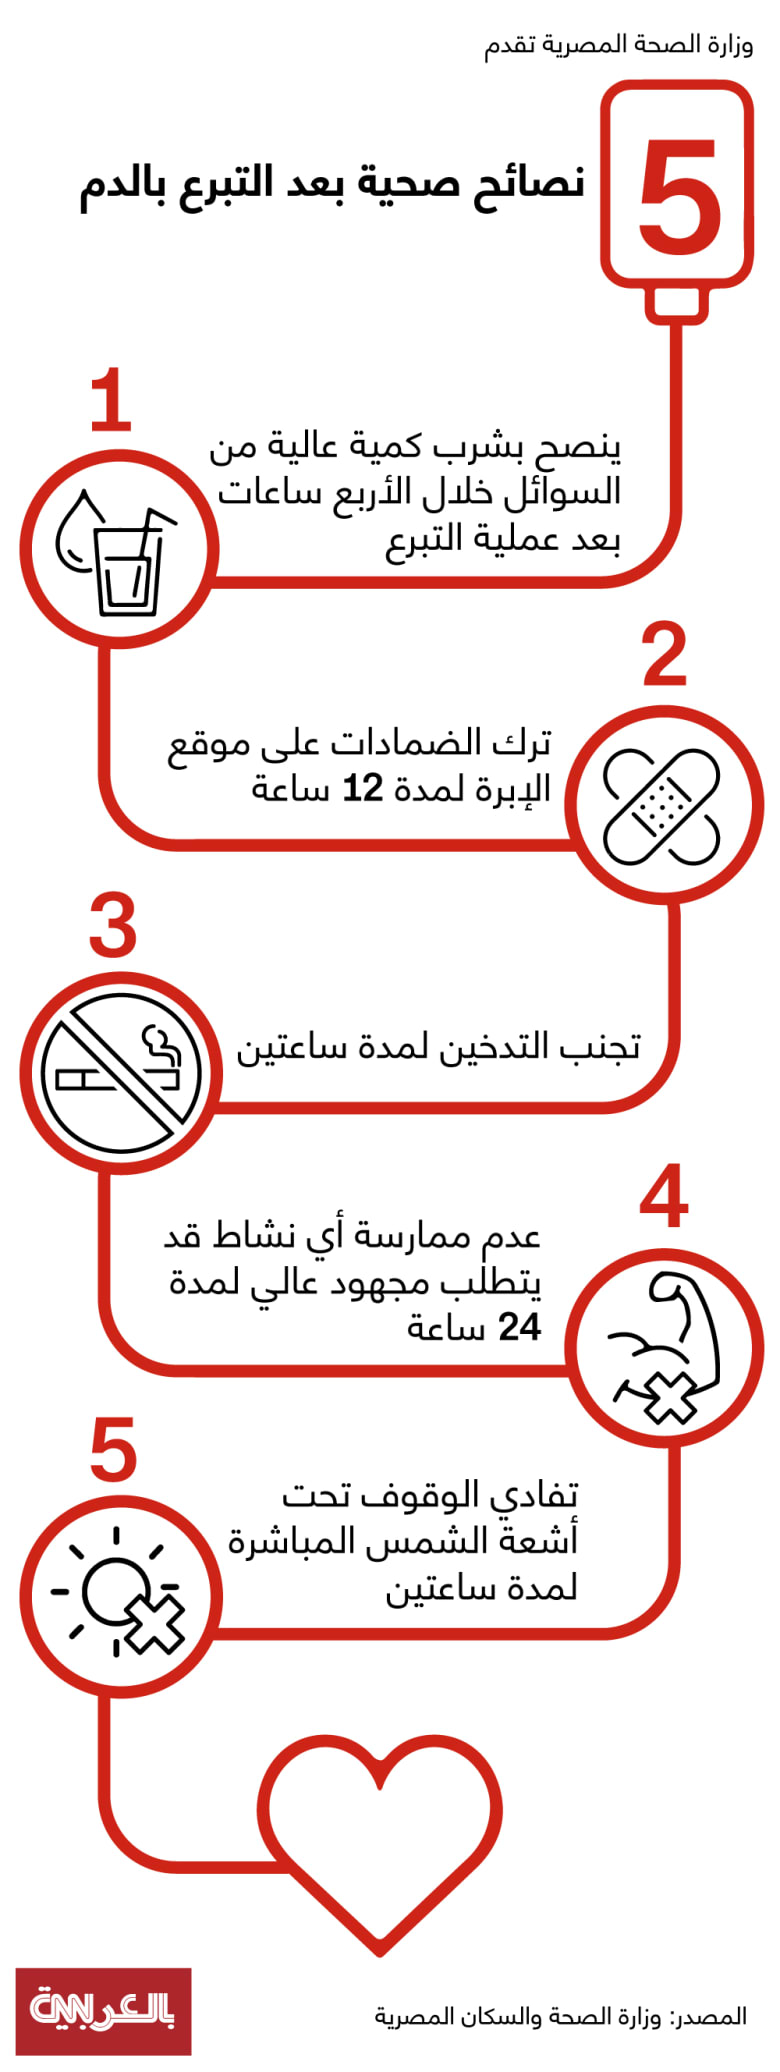 blood-donation-egypt-health-ministry